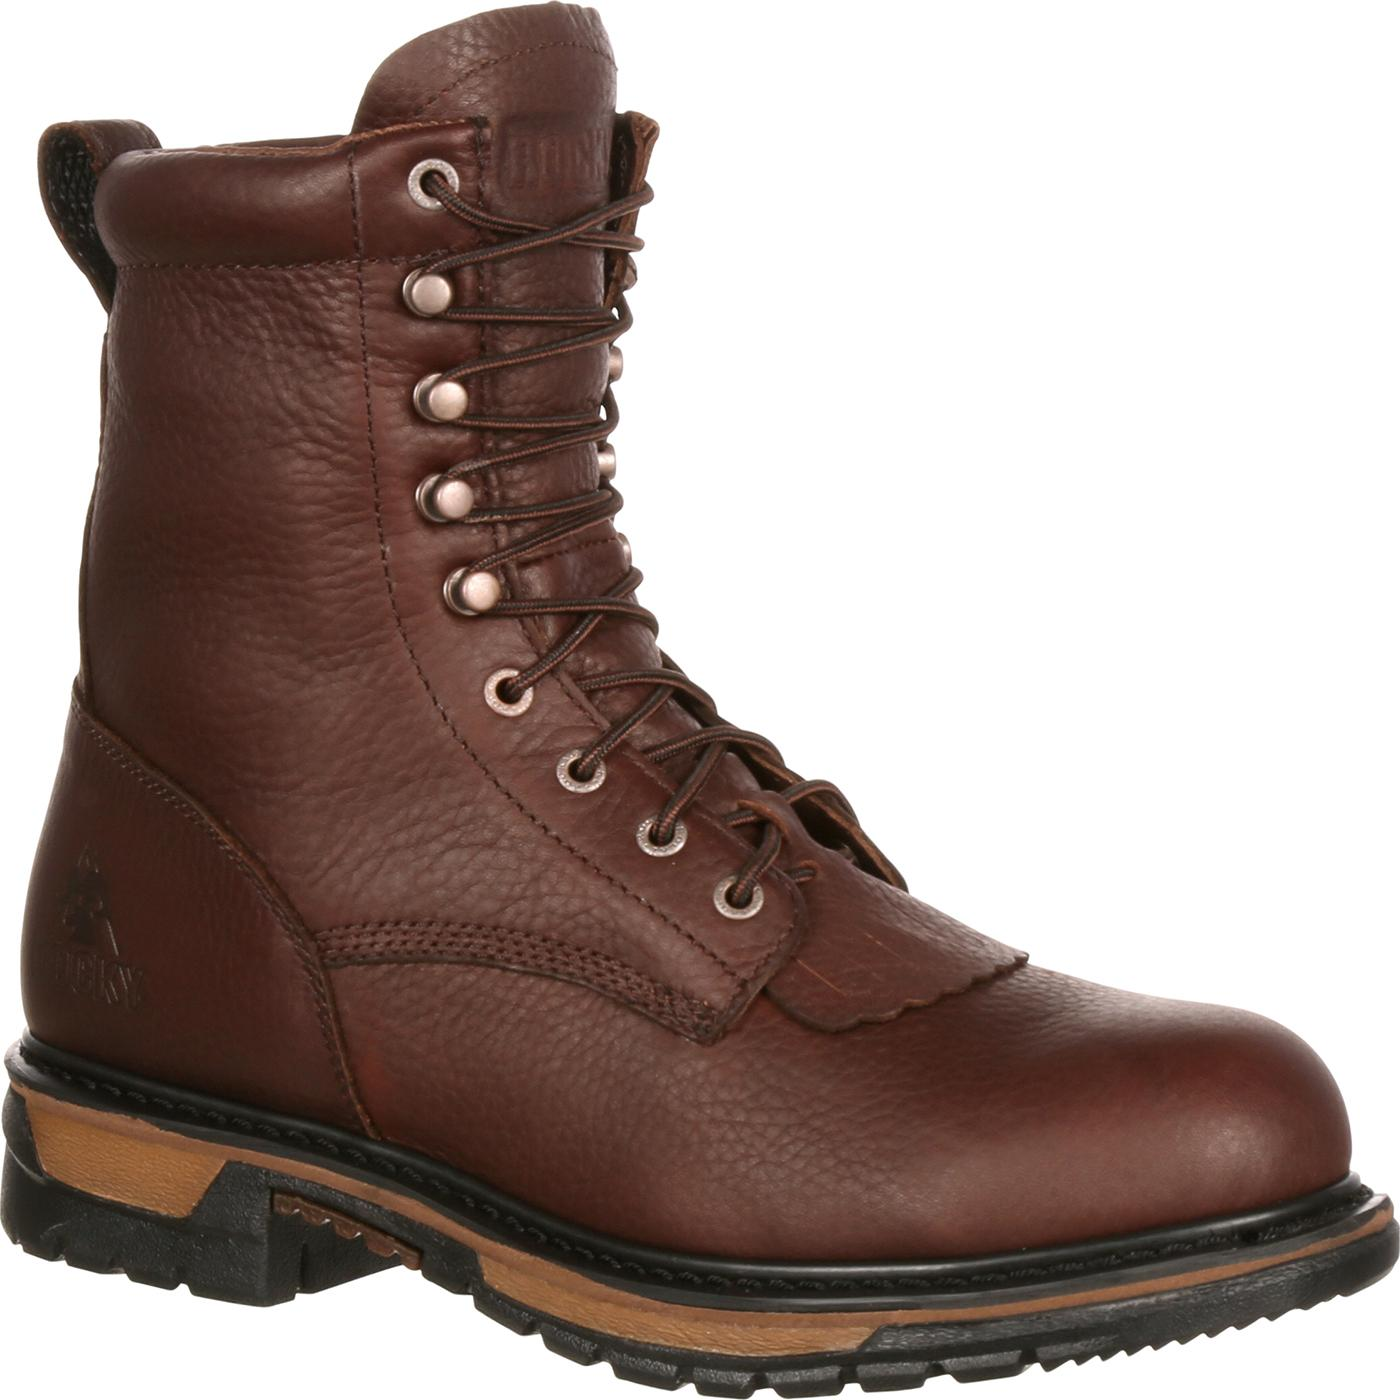 52226c5fa72 Details about Rocky Original Ride Steel Toe Waterproof Lacer Western Boot  Round toe ASTM F2413